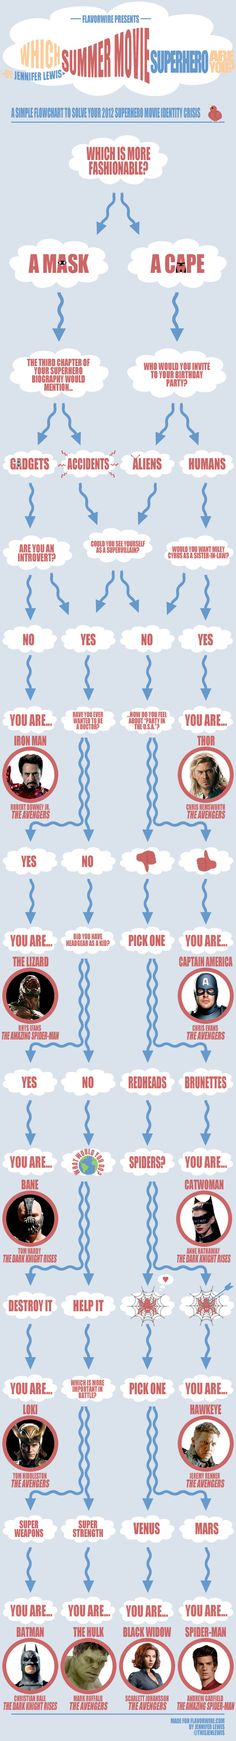 Exclusive Infographic: Which Summer 2012 Movie Superhero Are You? flavorwire.com